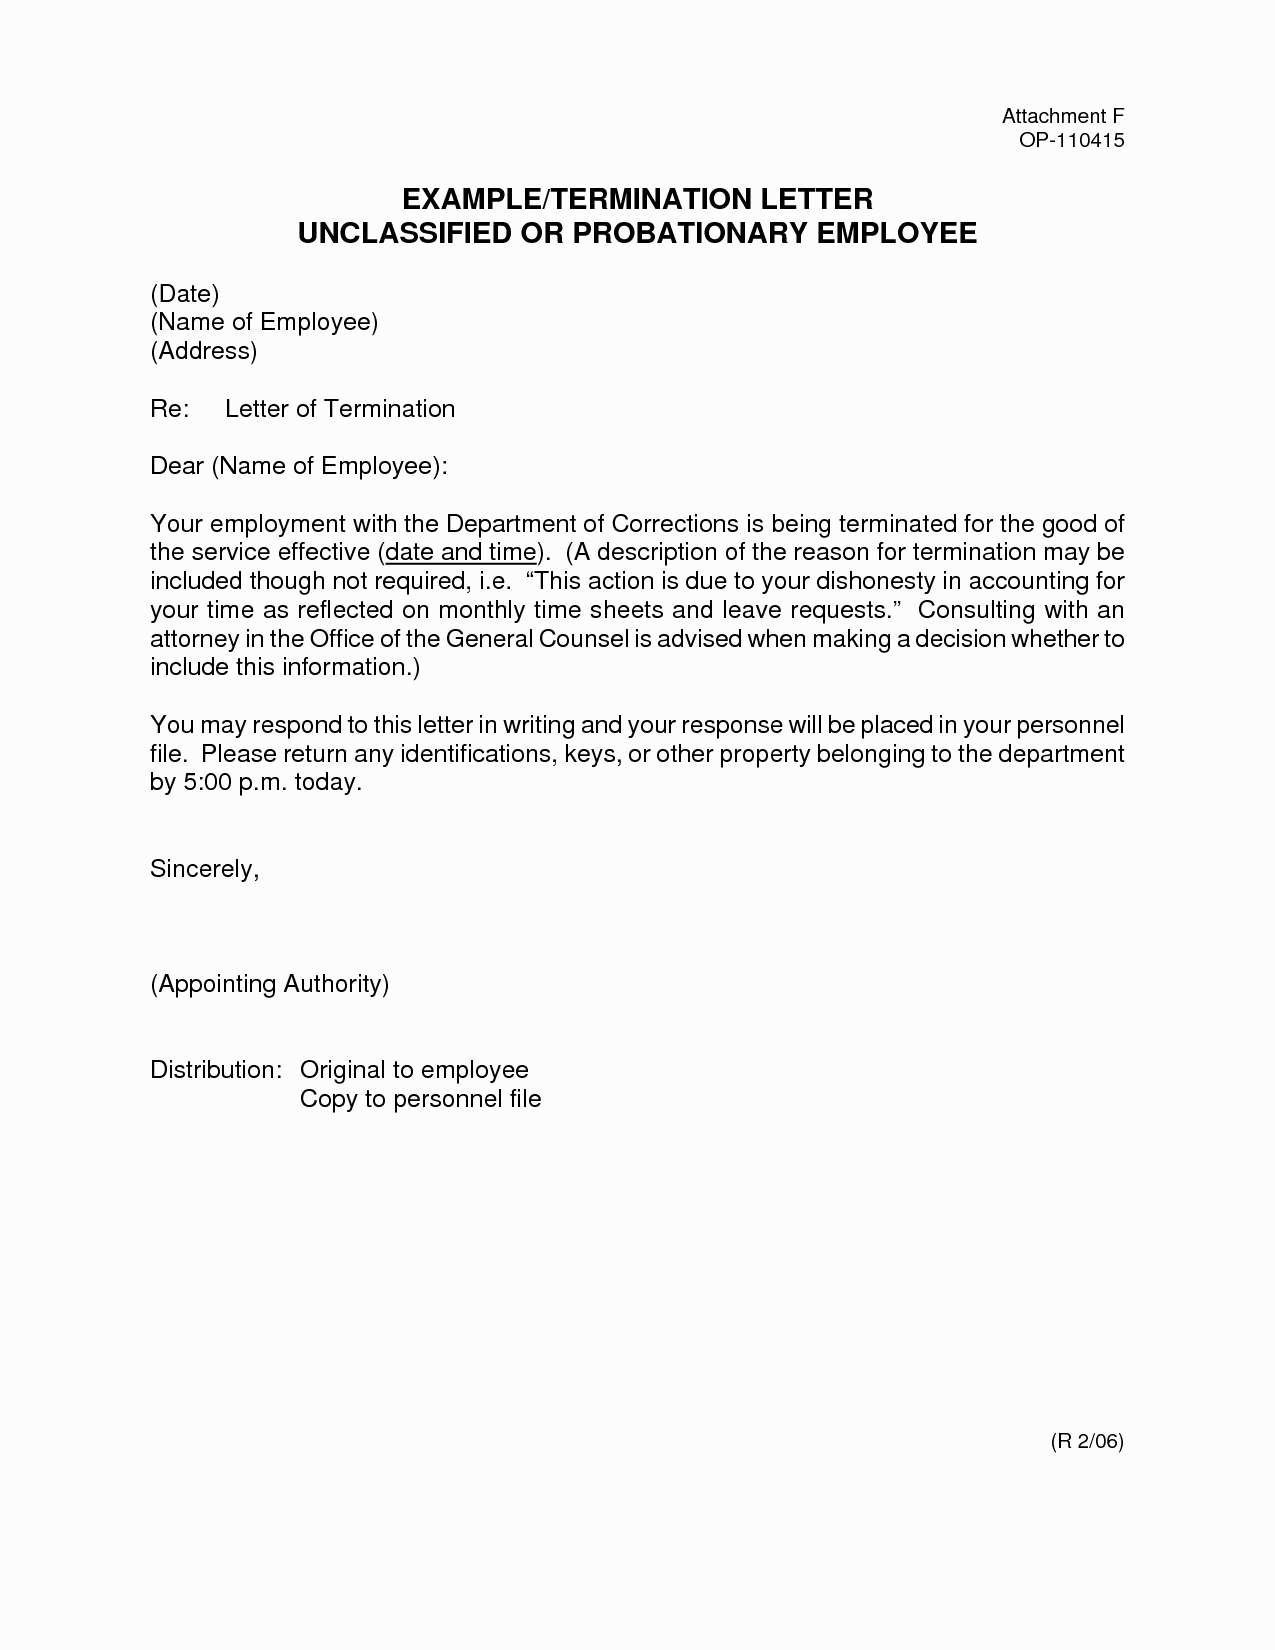 probation termination letter template example-Termination Employment Letter Template Inspirational Employment Probation Letter Template 12-r